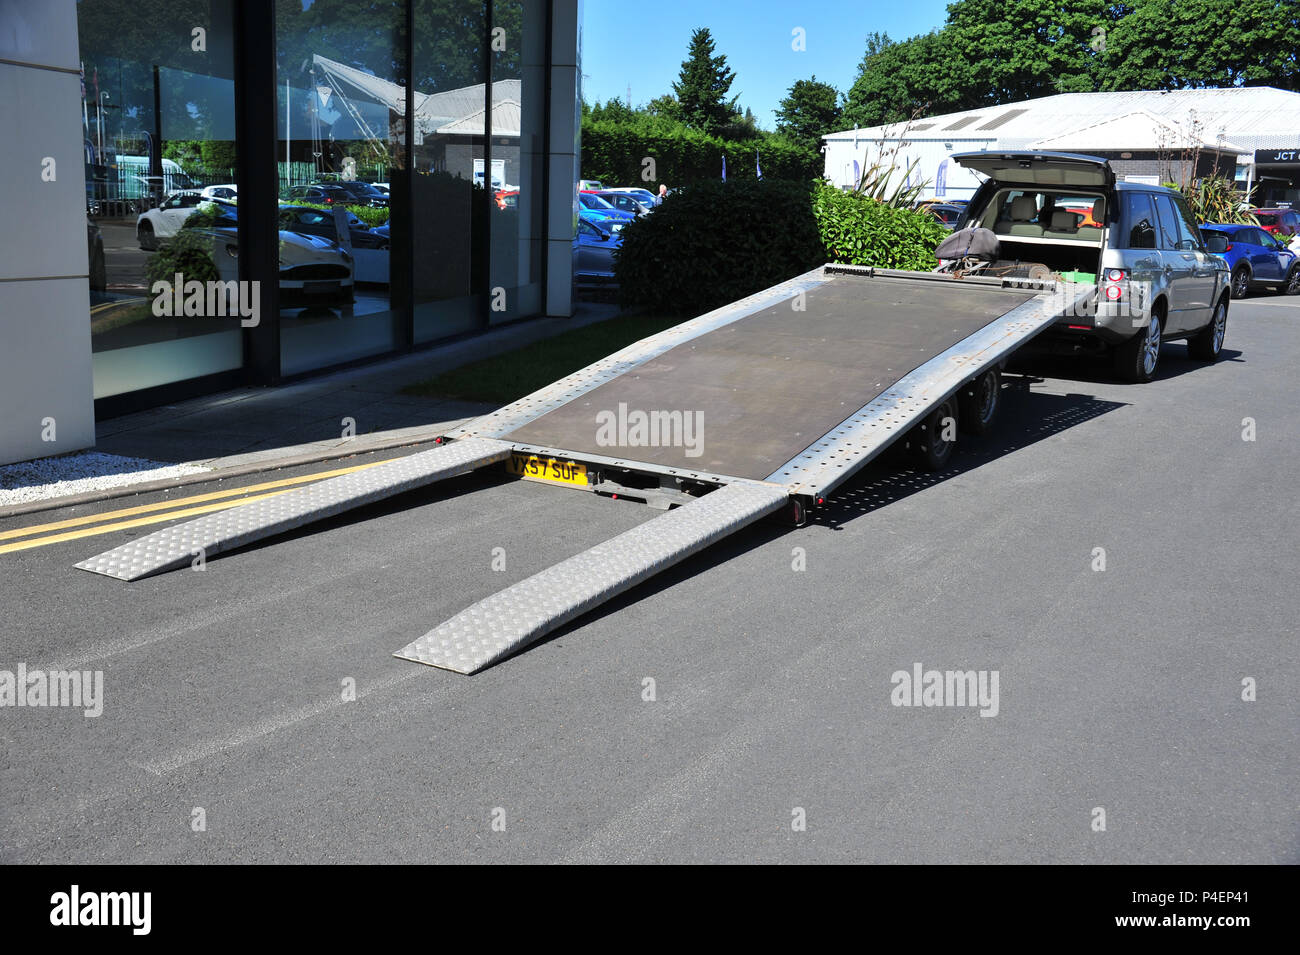 Large Car Trailer With Ramps Lowered Ready For Loading A Car Stock